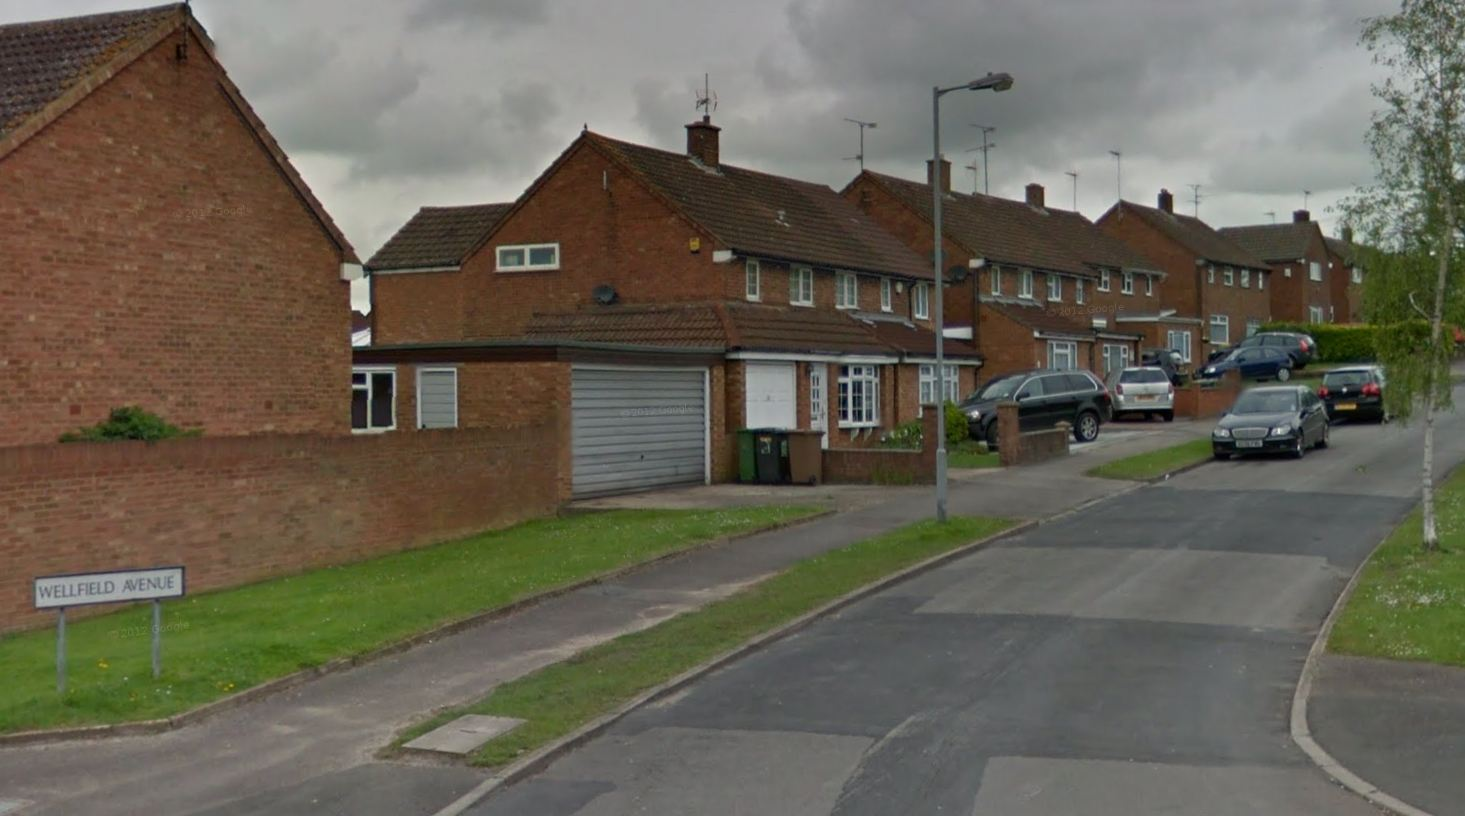 Man stabbed several times after confronting burglars in his home